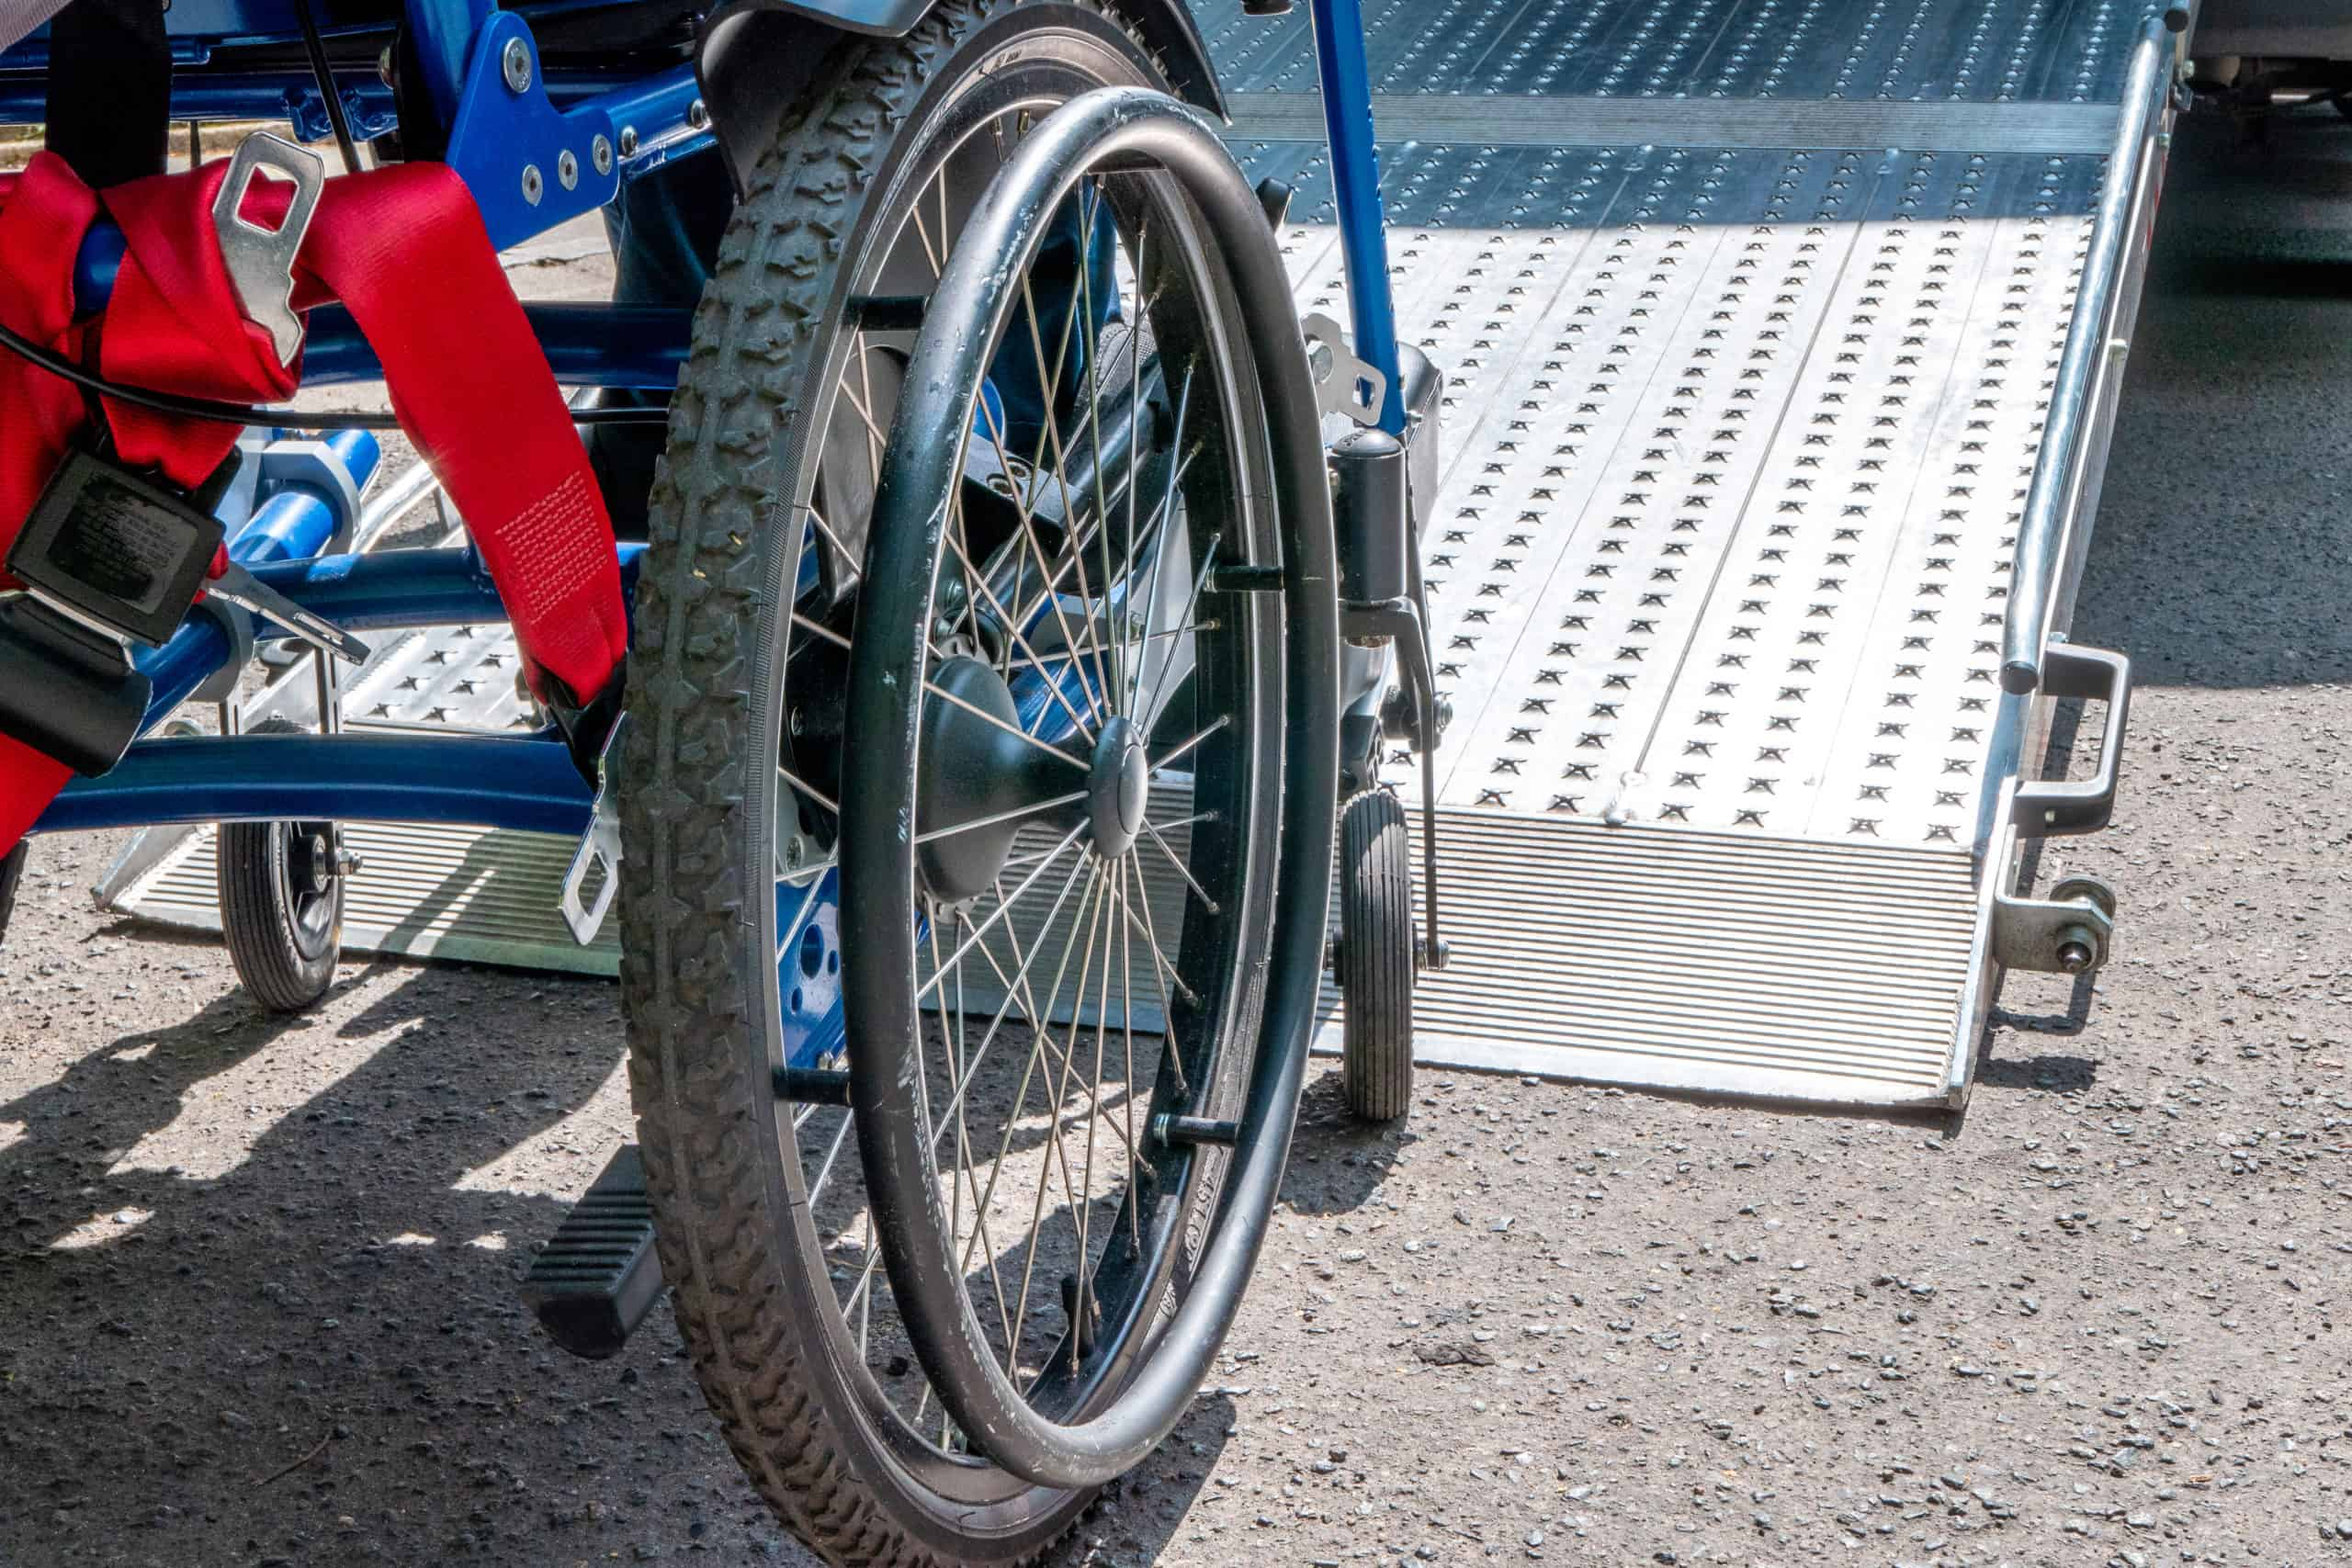 A wheelchair in front of a vehicle ramp